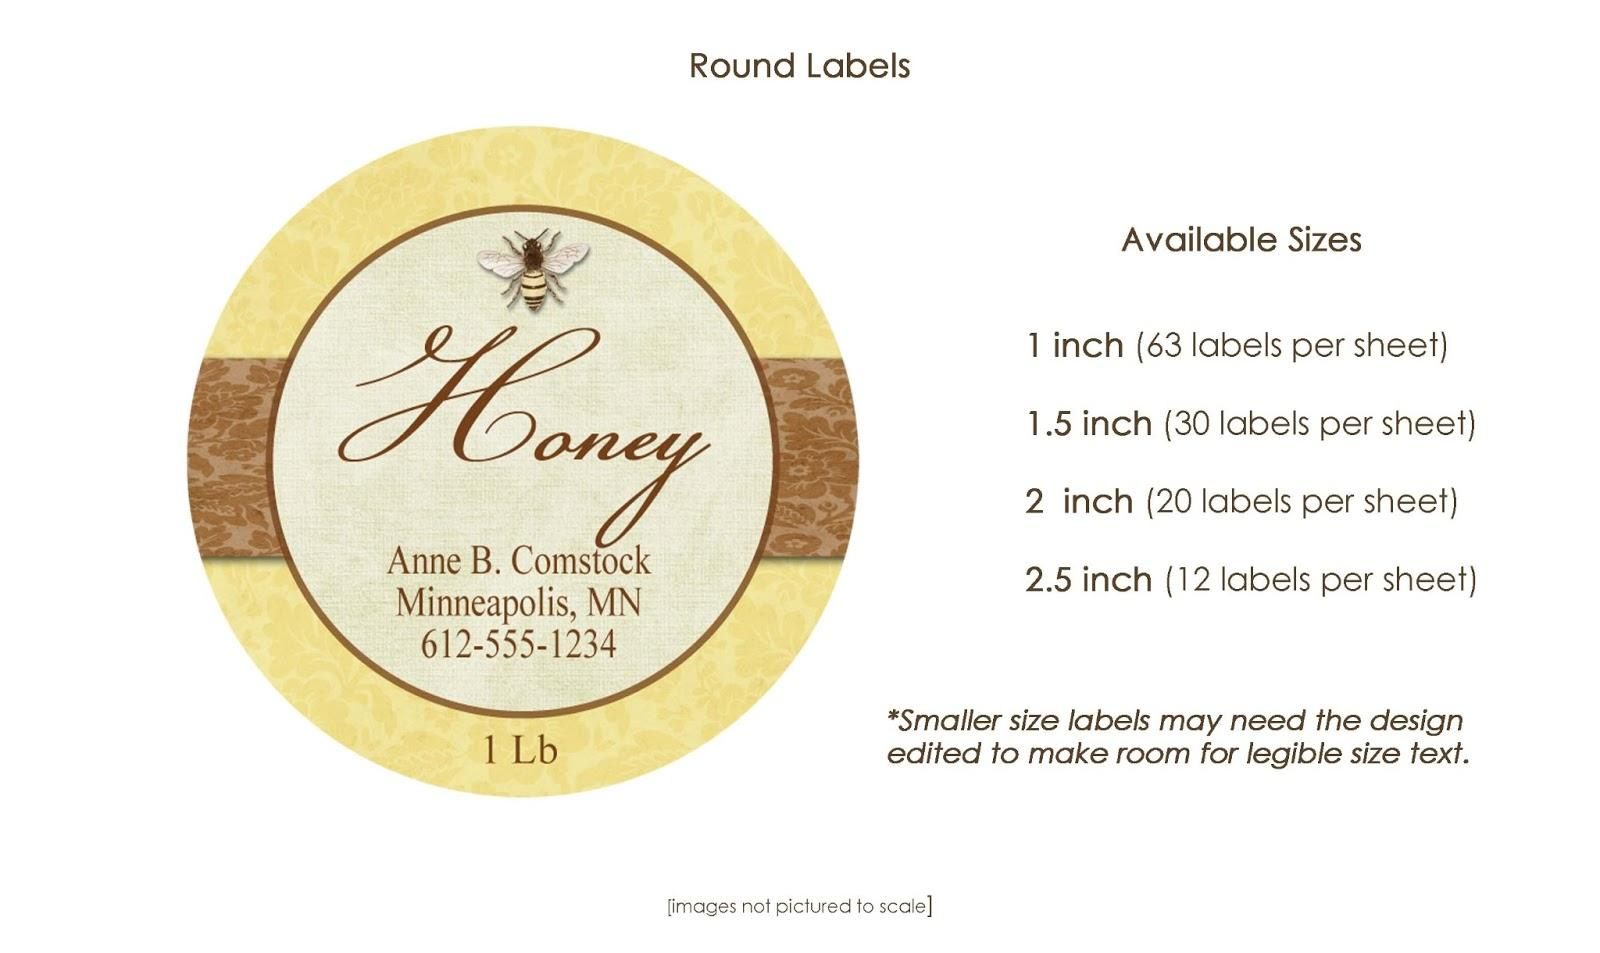 2 Inch Round Label Template 12 Per Sheet